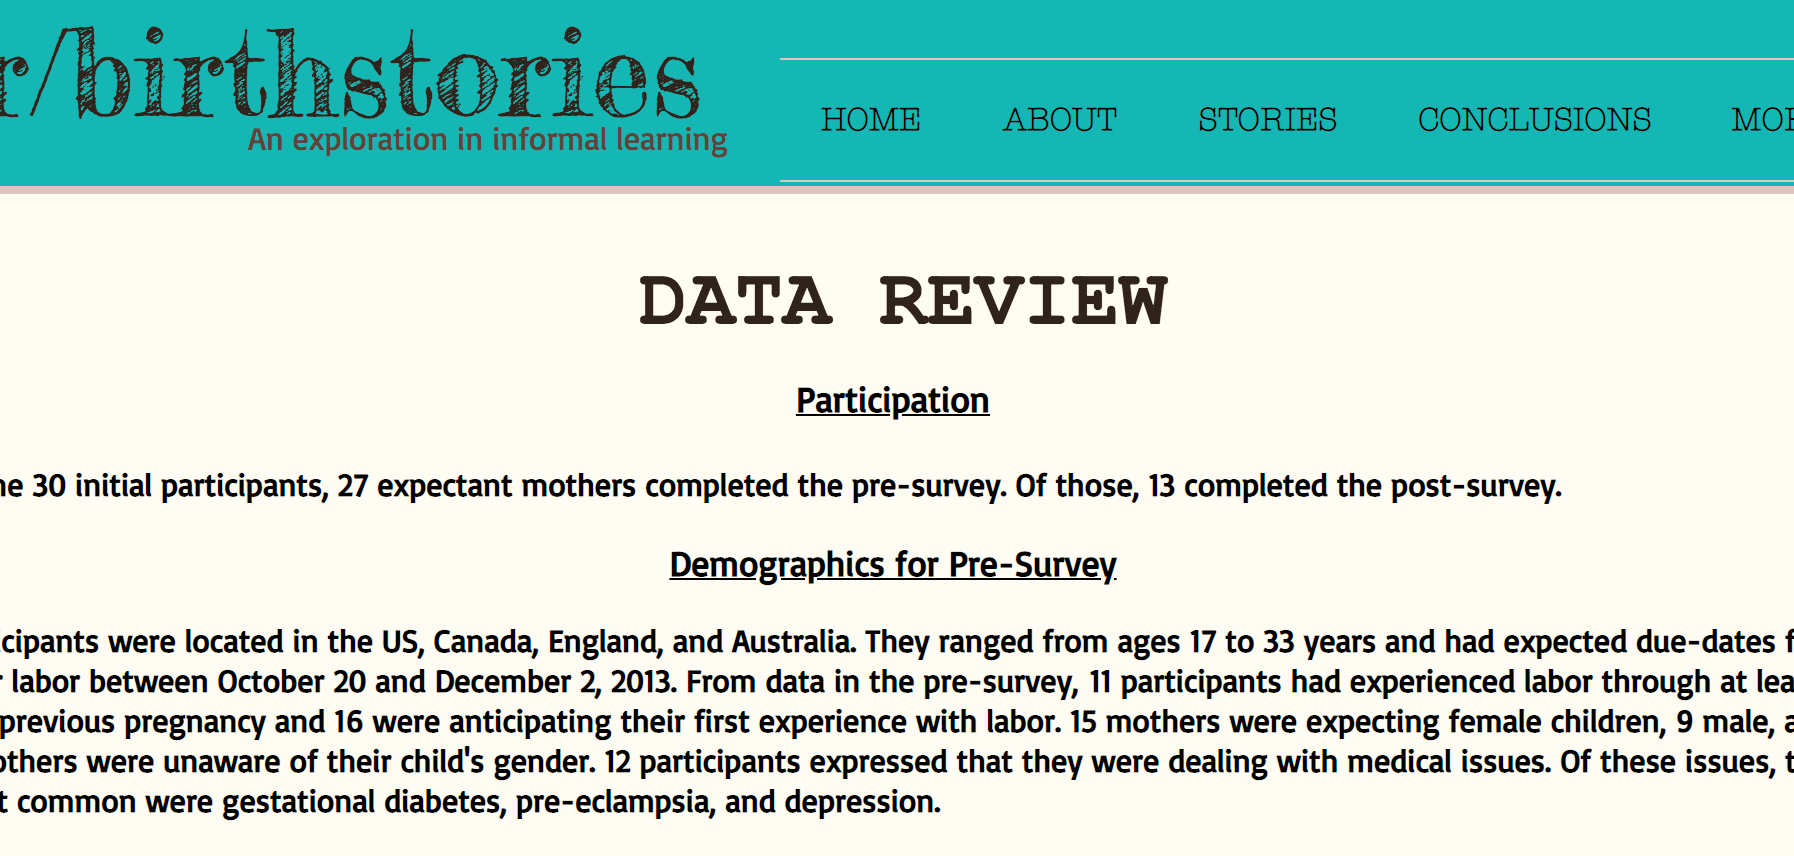 Designed as a research project, data was collected to observe the potential impacts reading original stories would have on expecting mothers